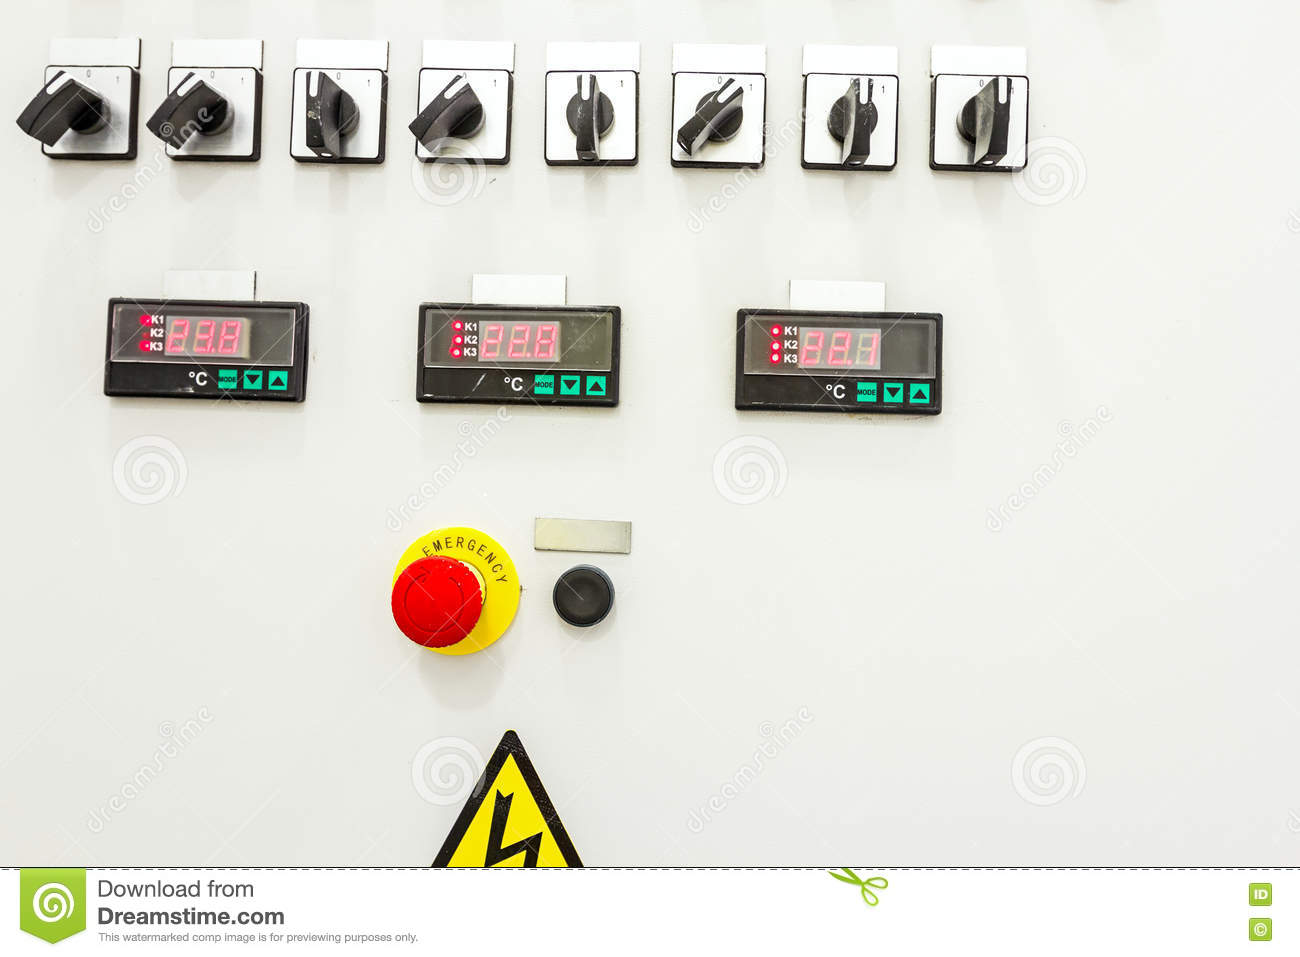 hight resolution of electrical control panel containing has a digital temperature gauge with warning sticker and an emergency shutdown panic button